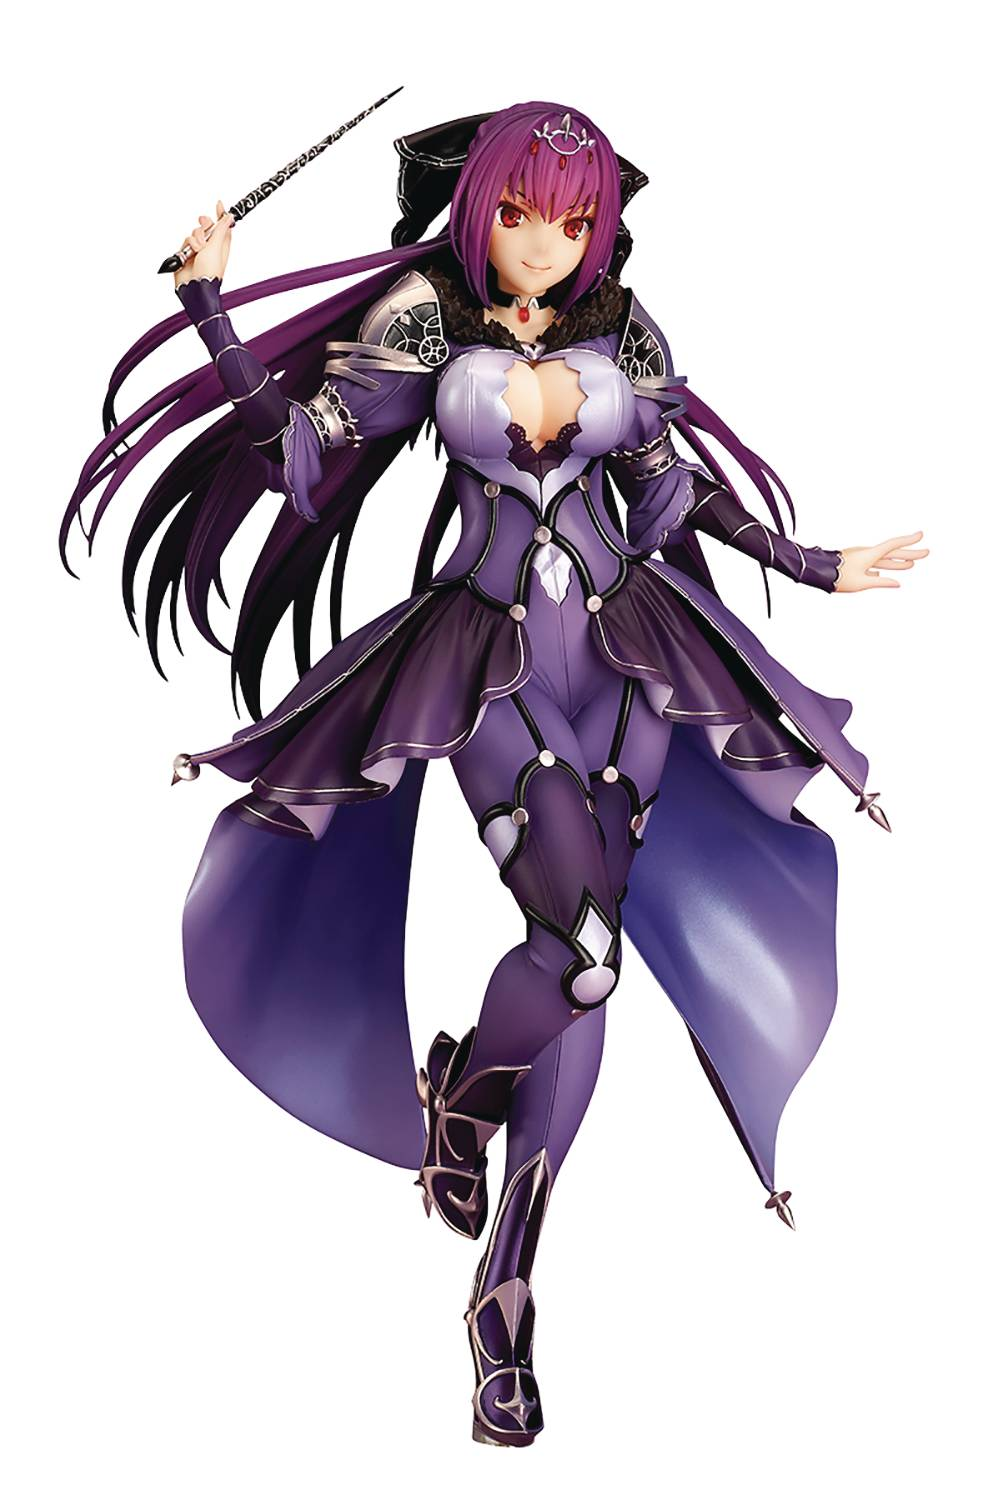 FATE GRAND ORDER CASTER SCATHACH SKADI 2ND ASCENSION 1/7 PVC